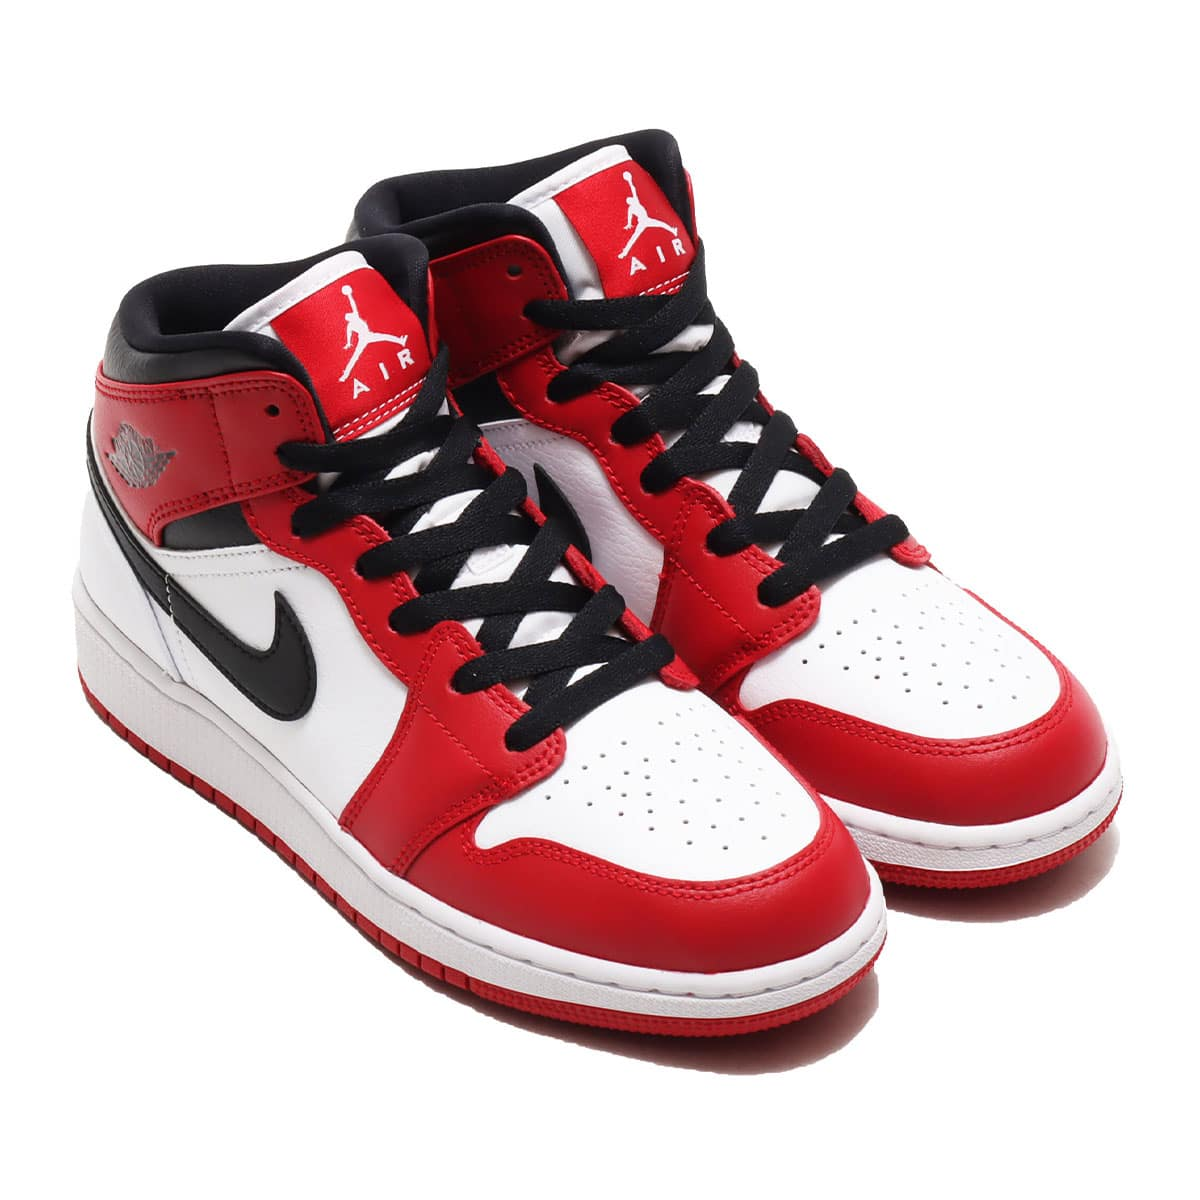 JORDAN BRAND AIR JORDAN 1 MID (GS) WHITE/GYM RED-BLACK 20FA-I_photo_large